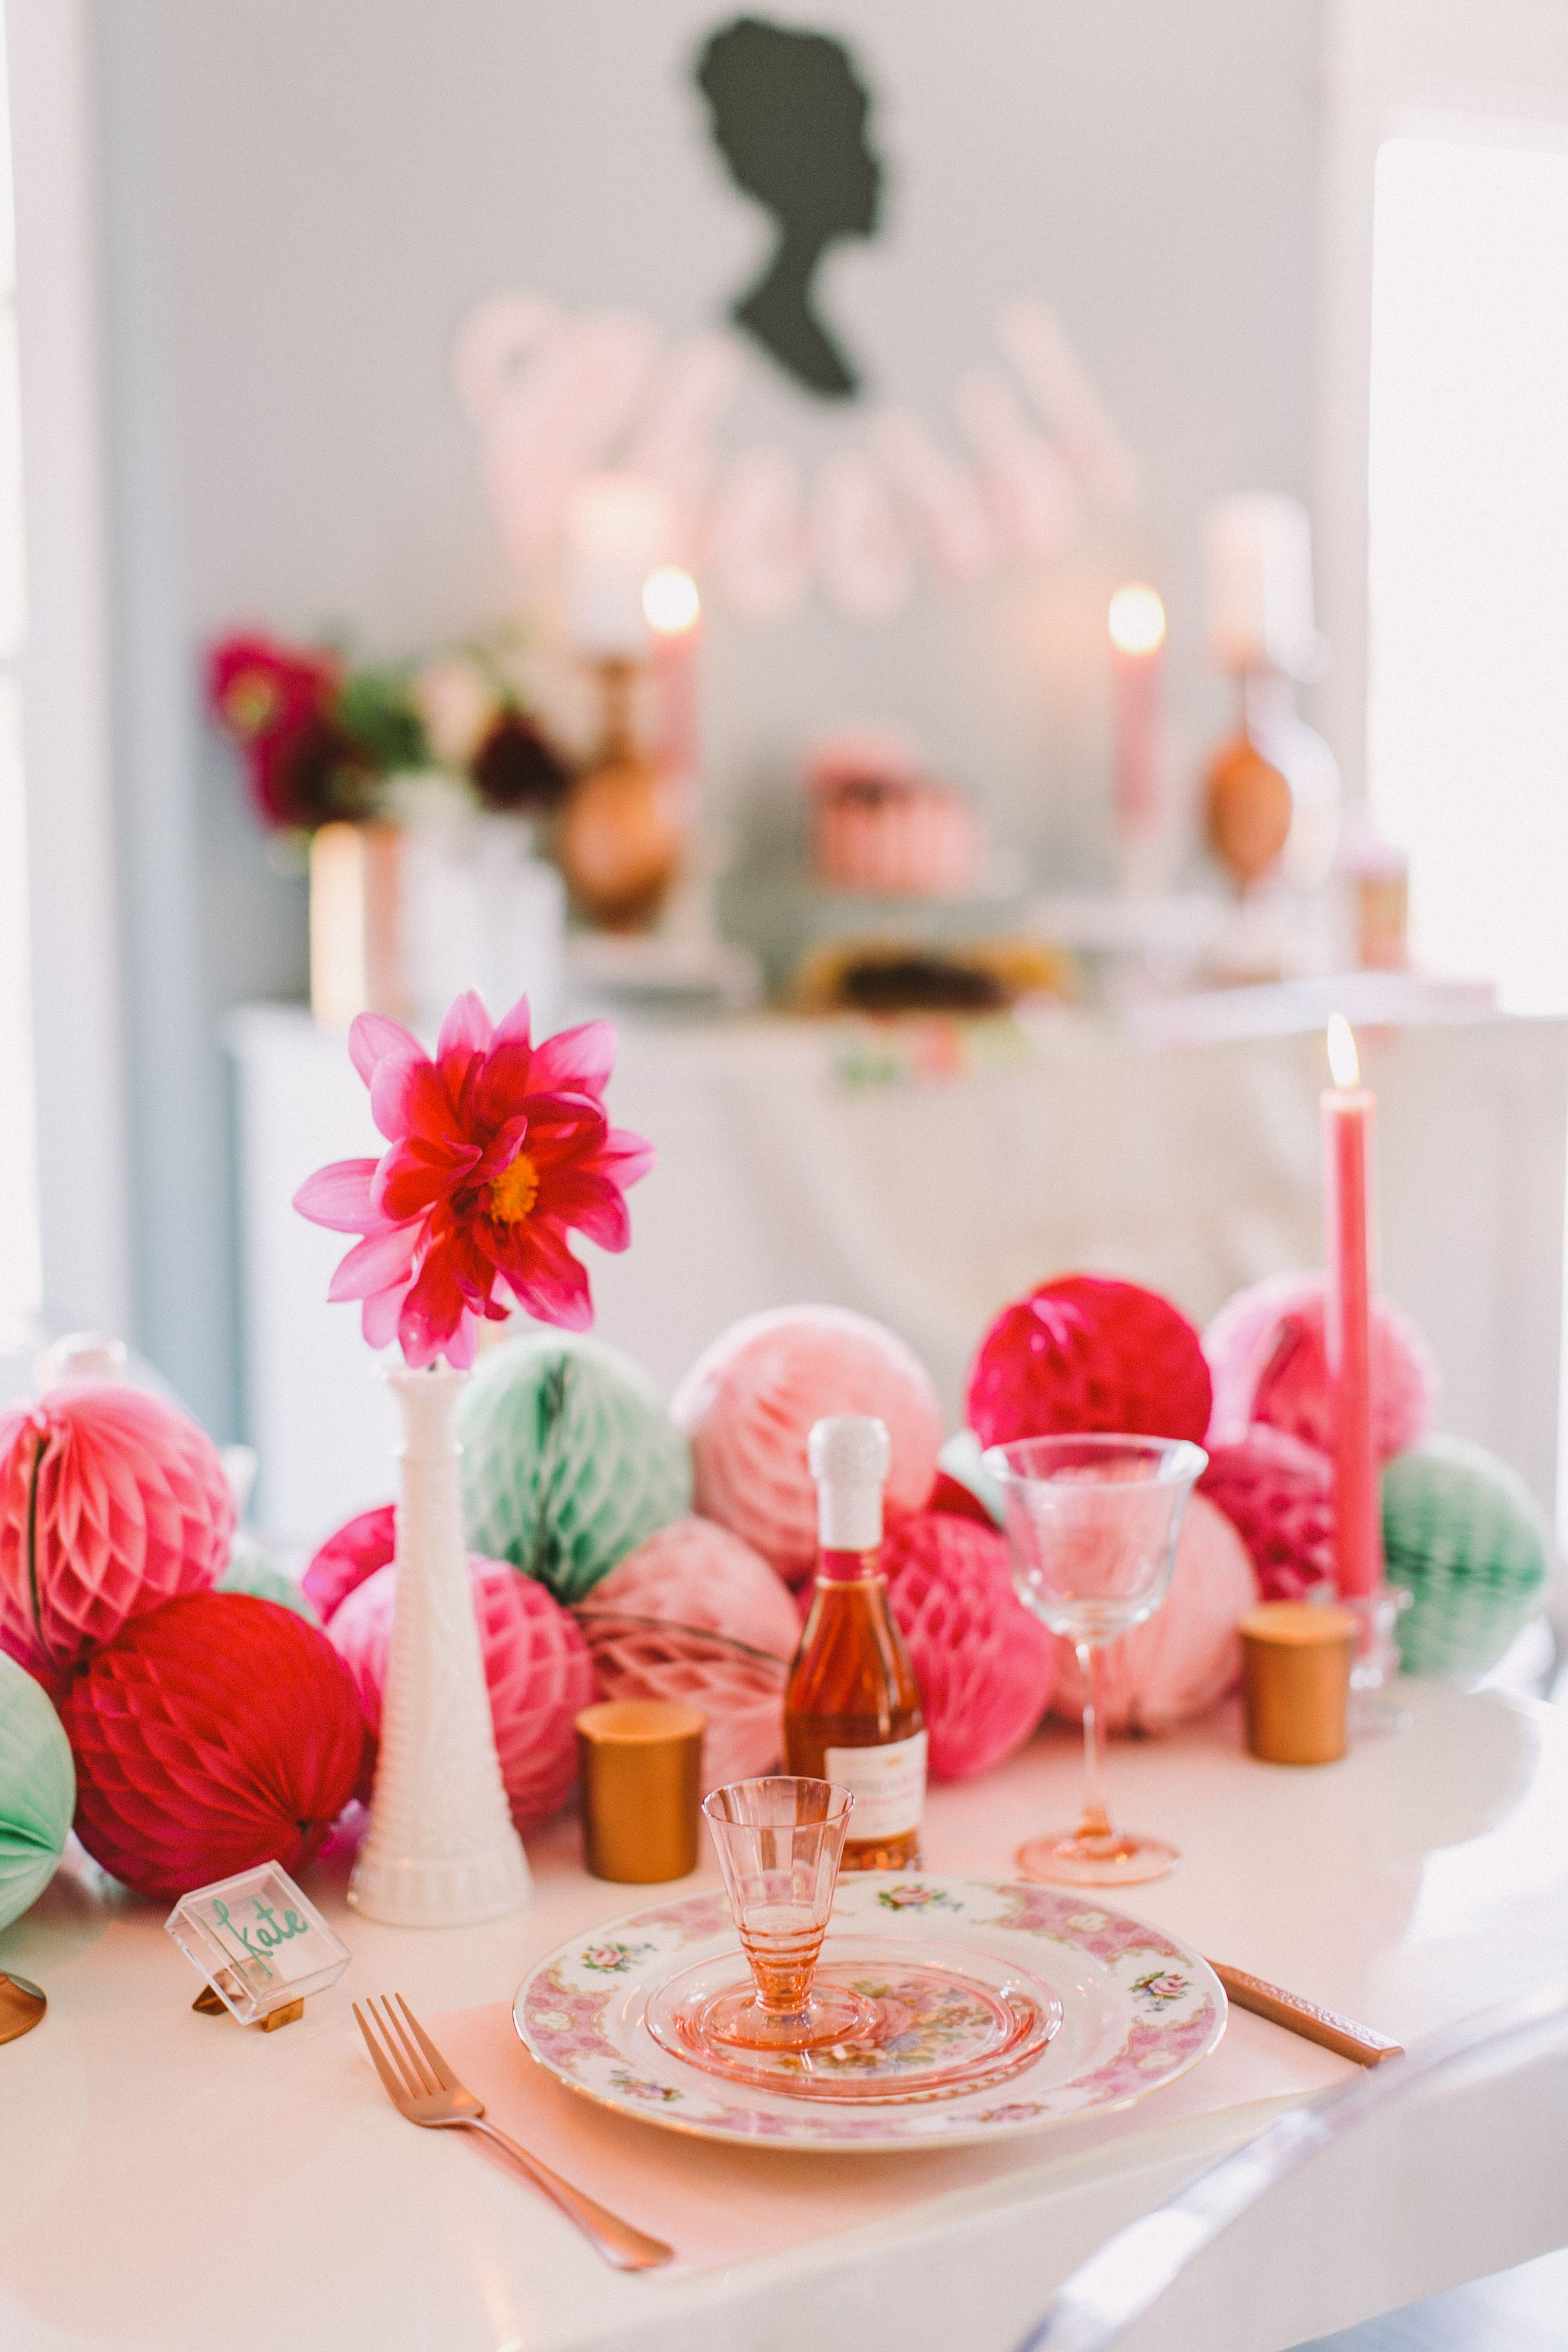 images about venue on pinterest tissue paper runners and